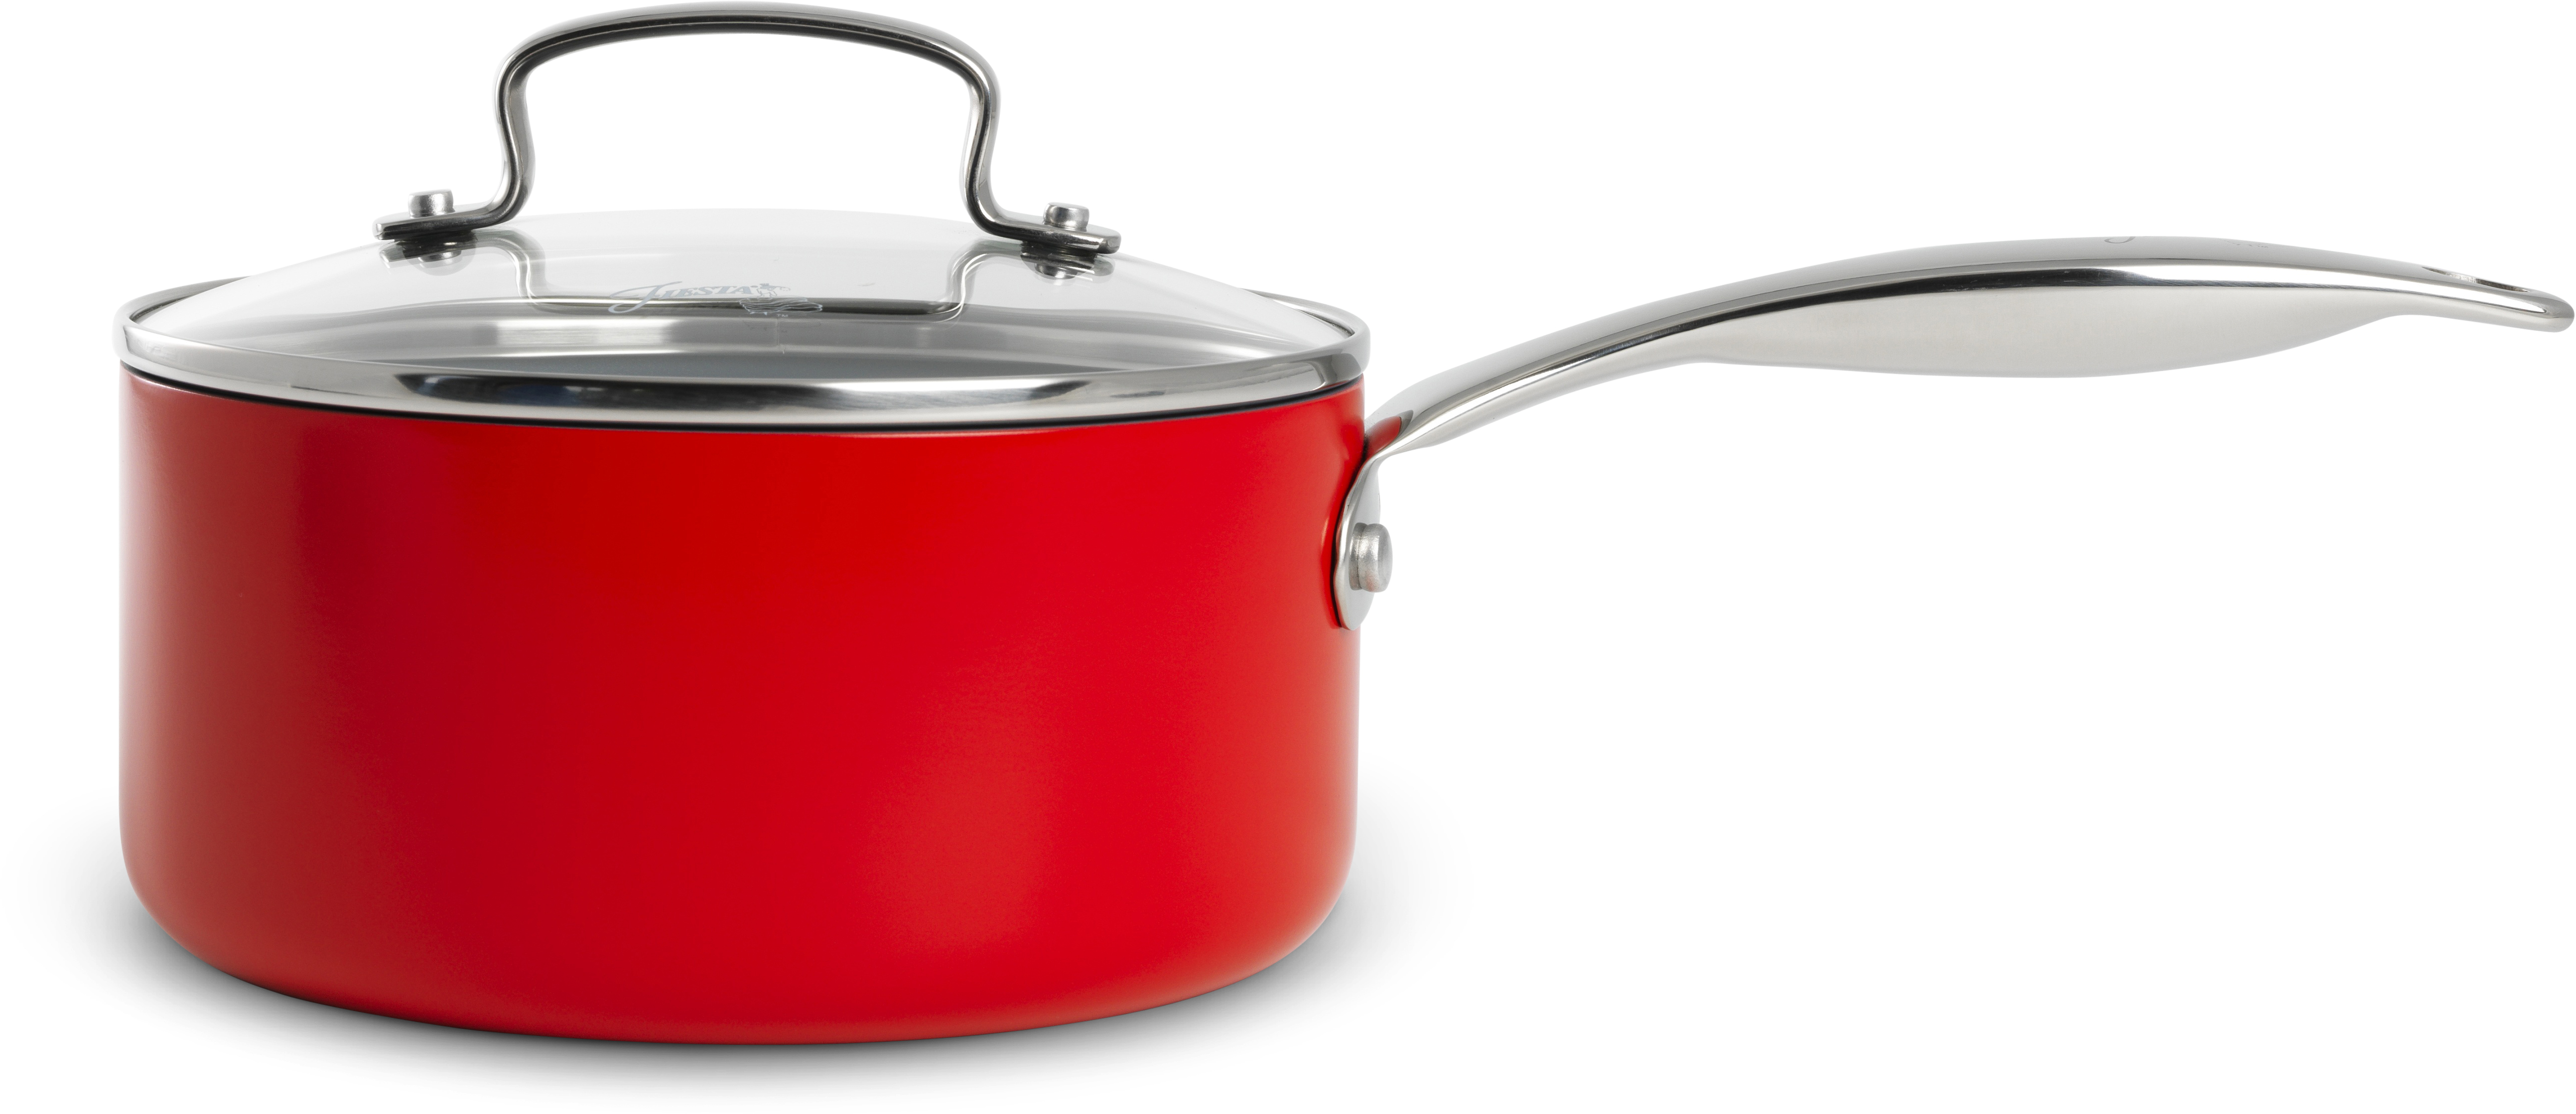 GreenPan Fiesta Scarlet Aluminum Covered Saucepan, 2 Quart